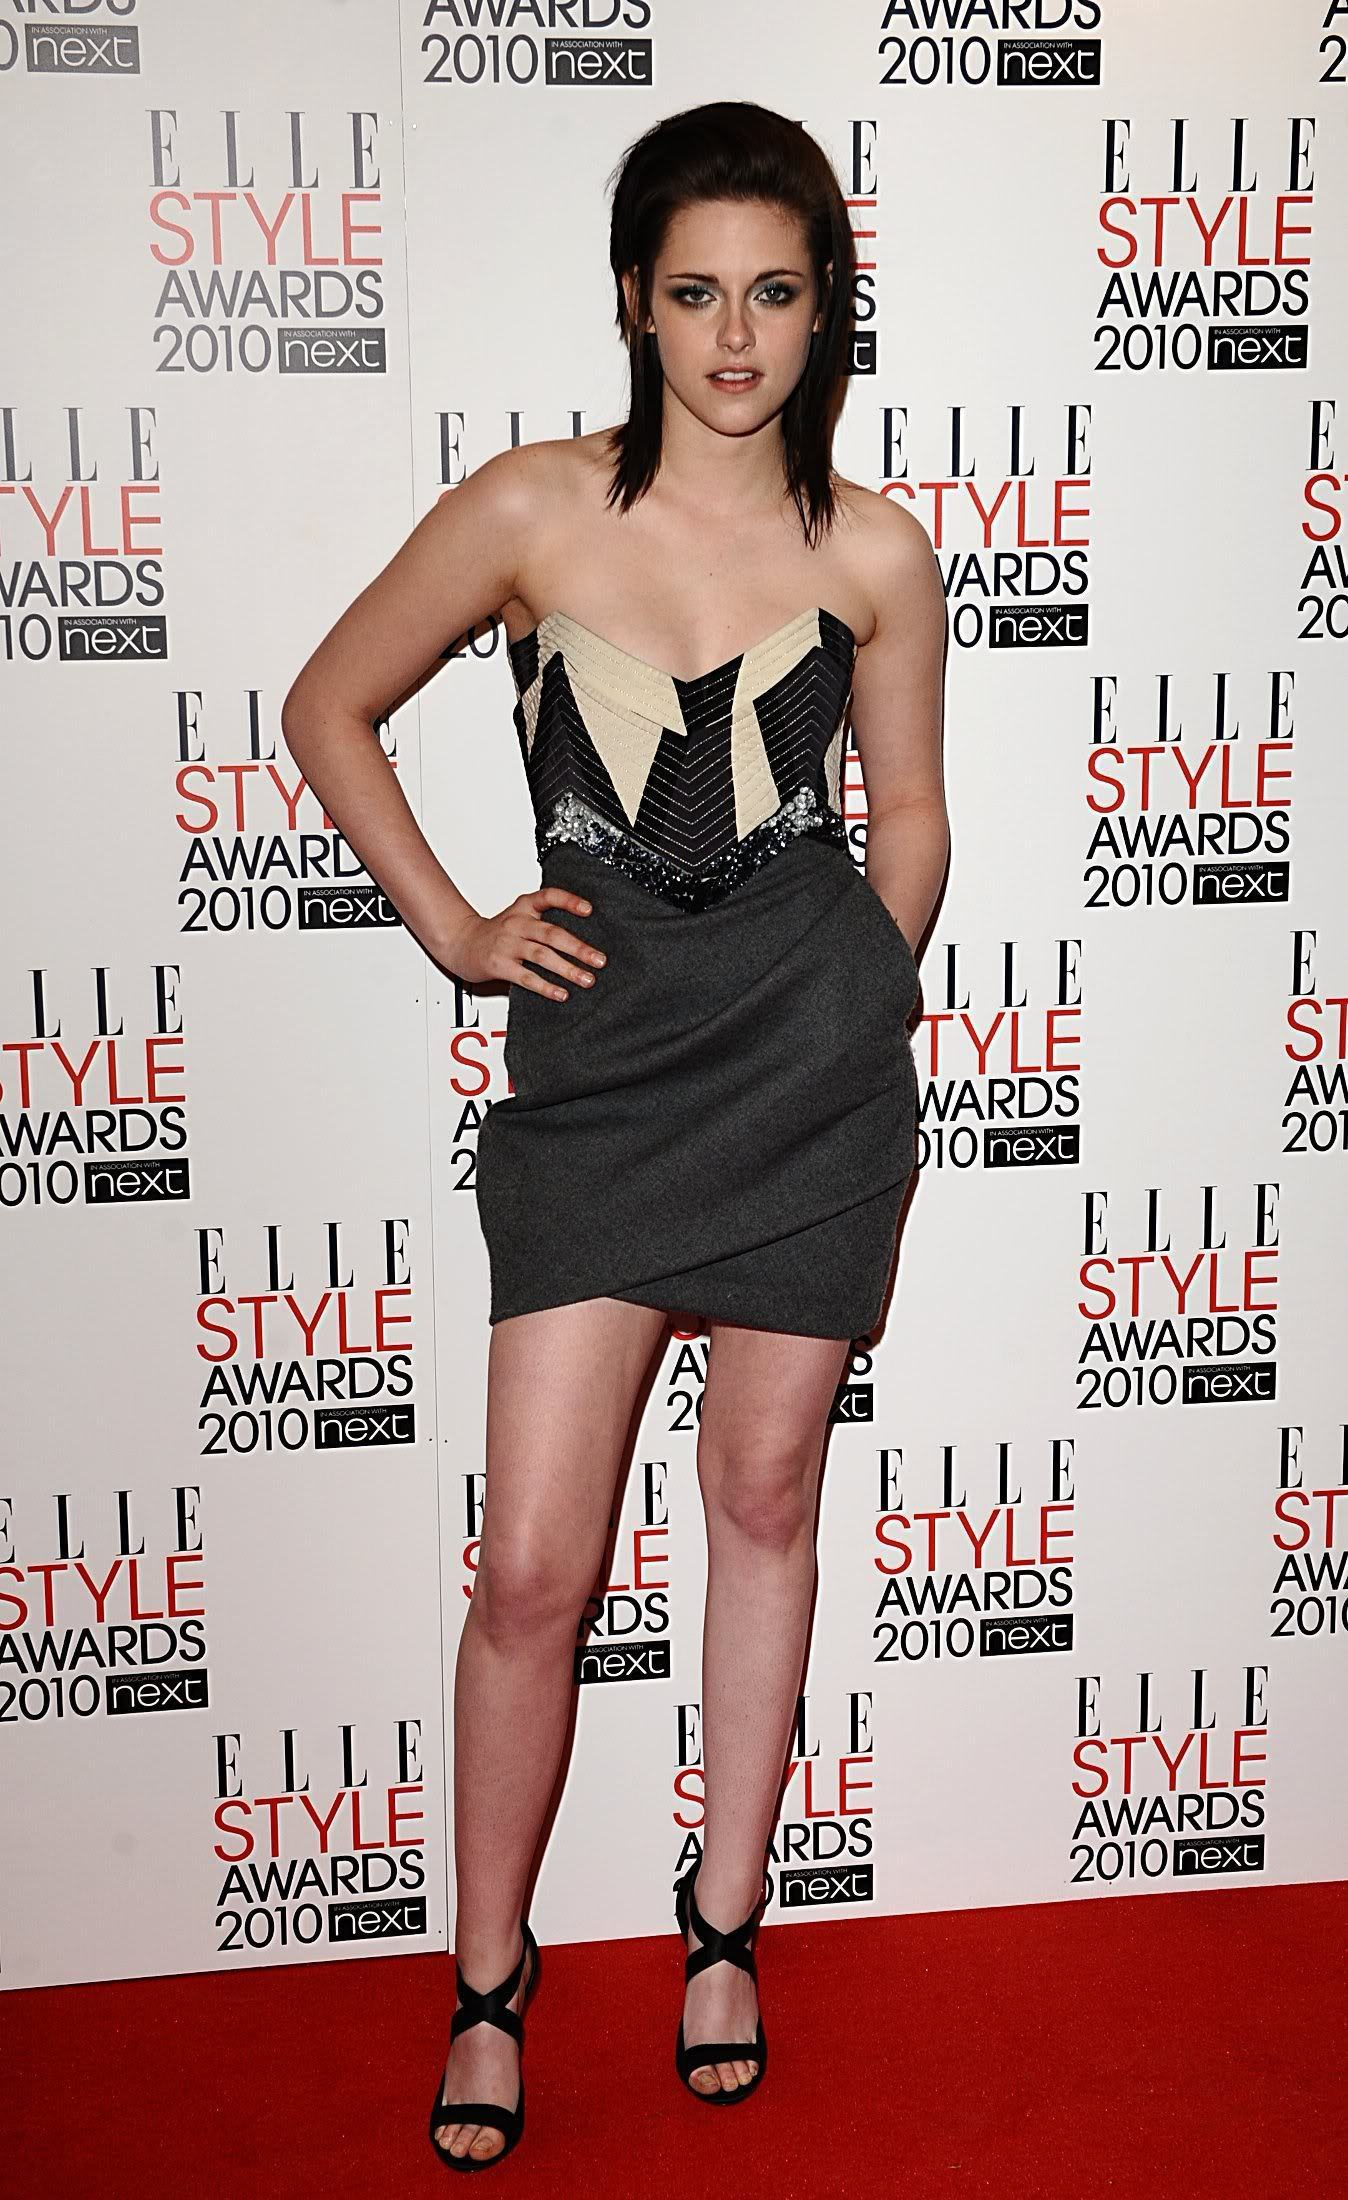 Kristen Stewart on Elle Style Awards